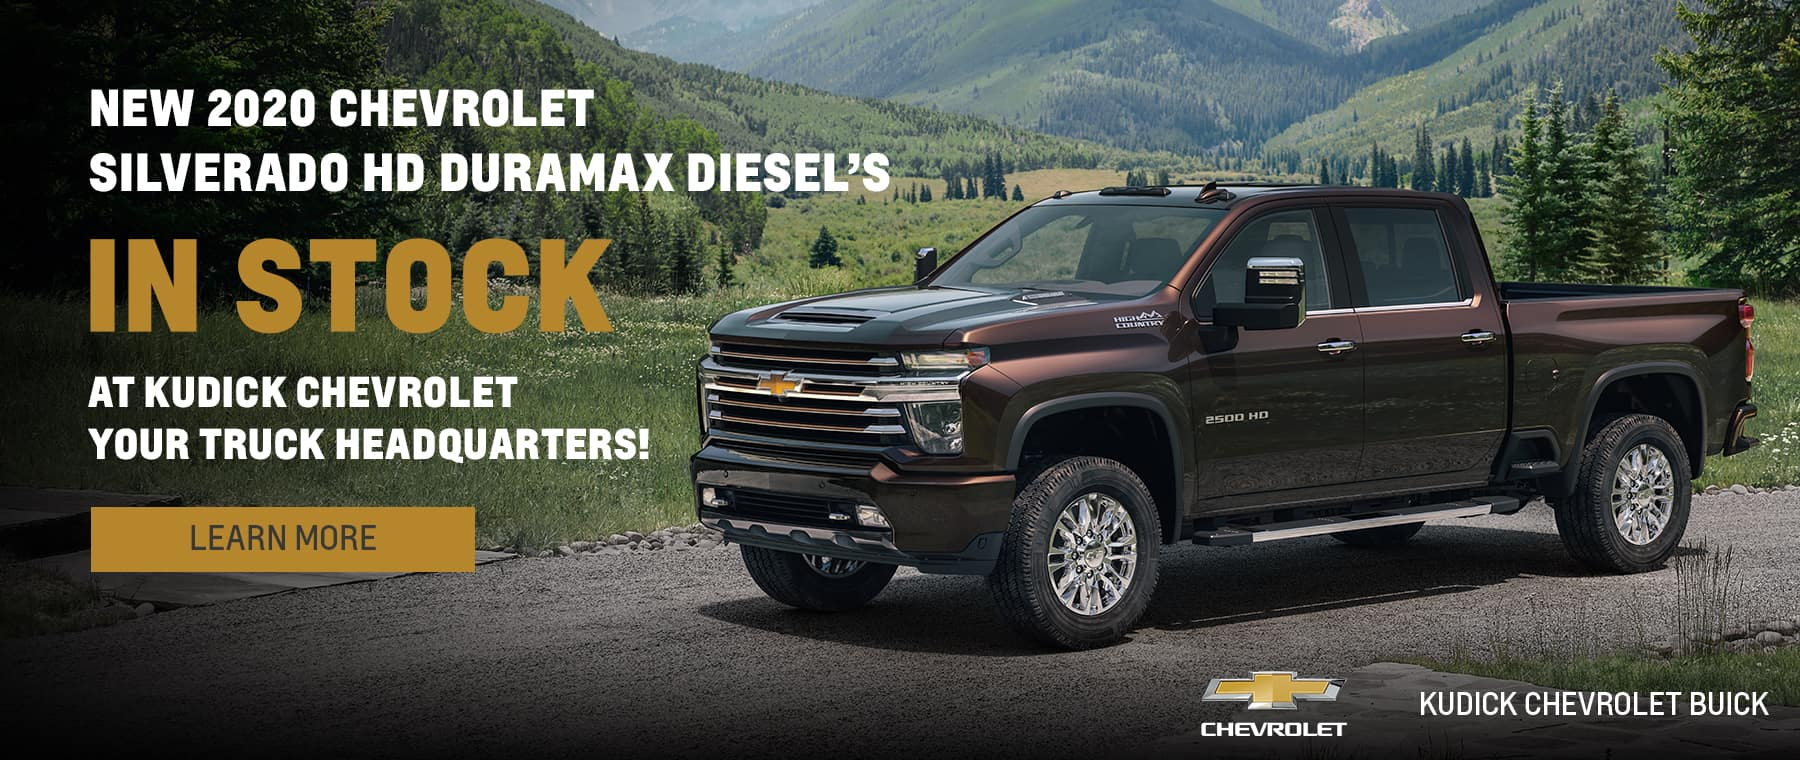 New 2020 Chevrolet Silverado HD Duramax Diesel's in stock at Kudick Chevrolet, your truck headquarters.